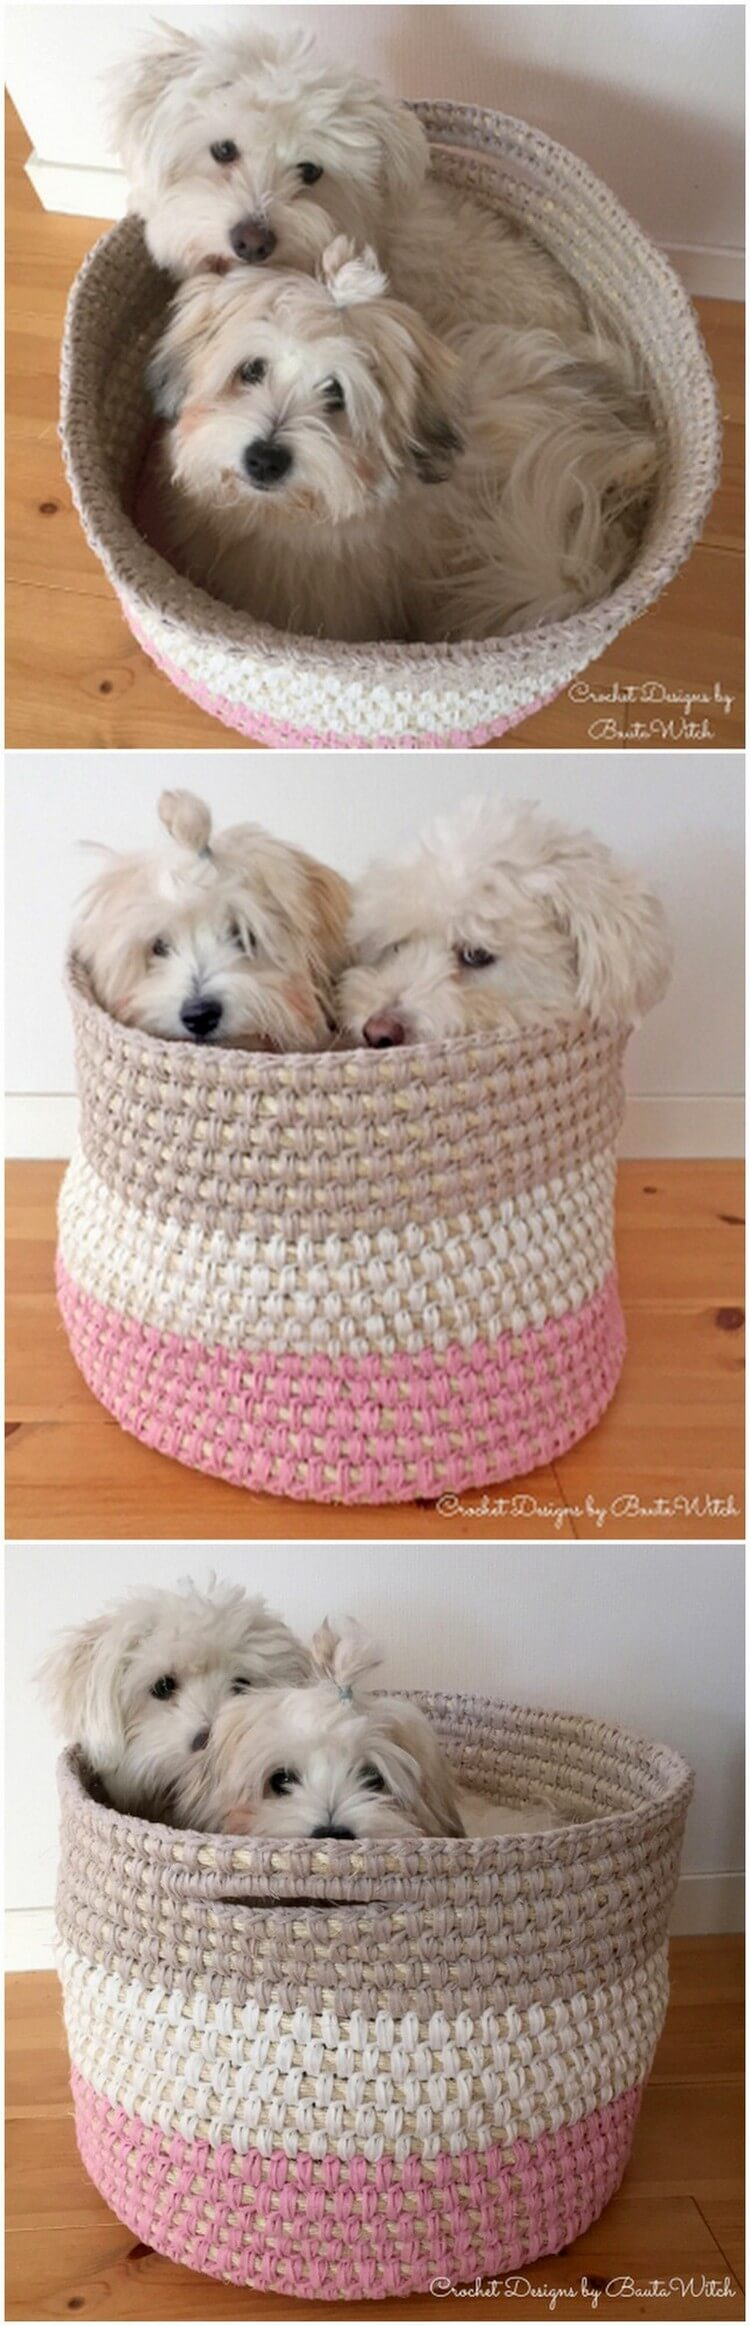 Crochet Basket Pattern (83)